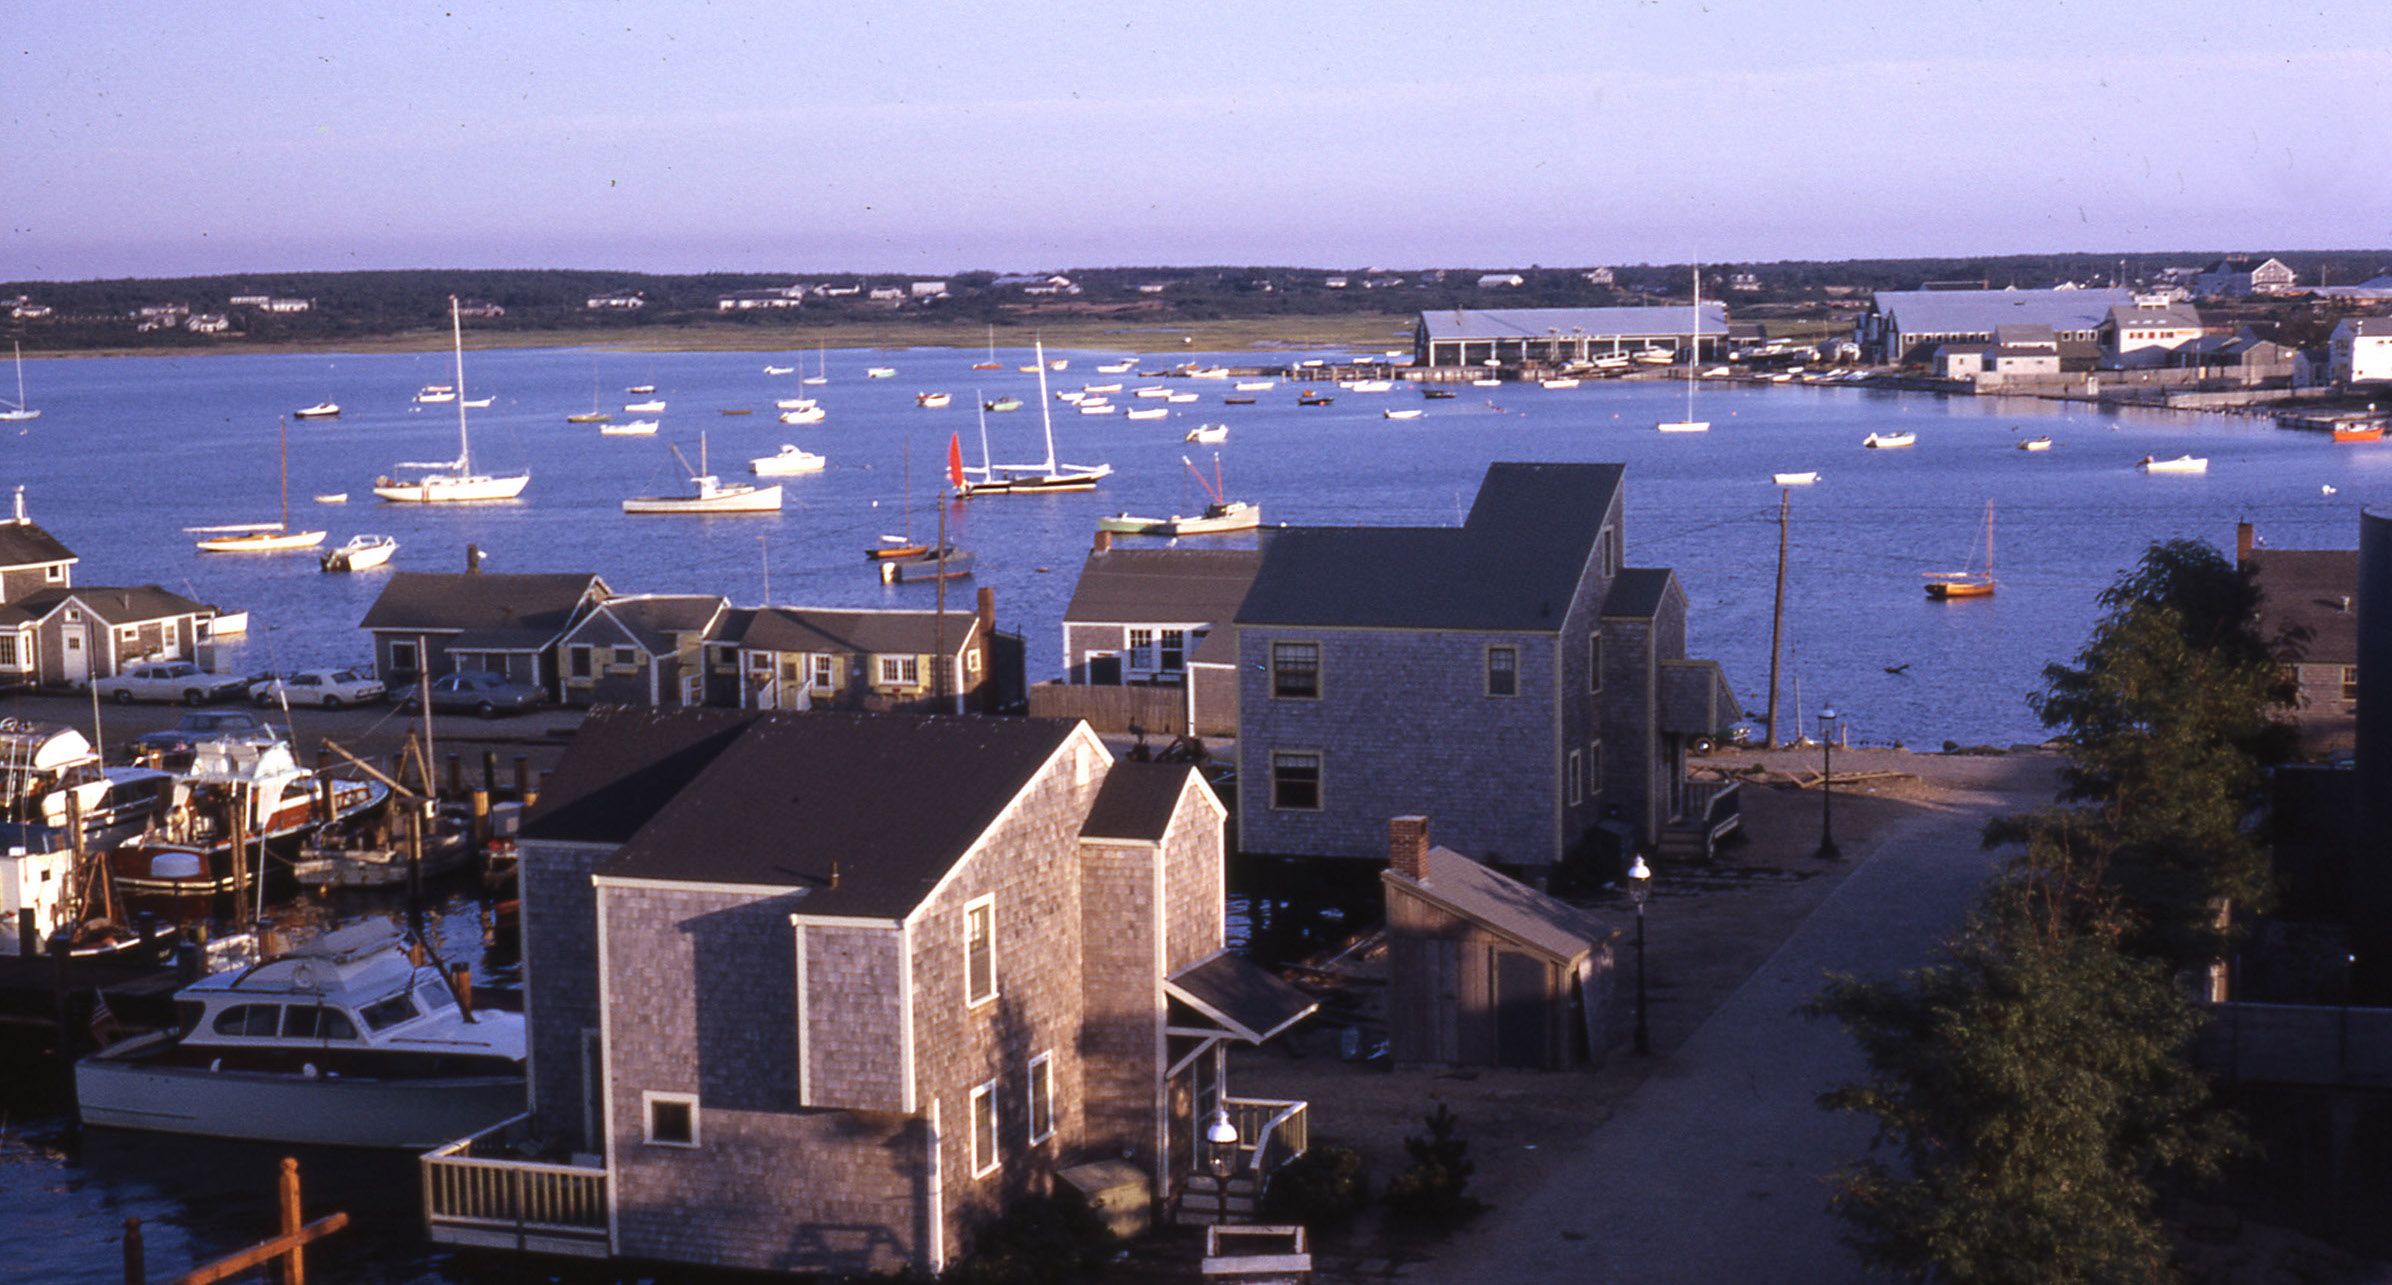 1968 - September - New Whale Street at Nantucket BOat Basin.jpg